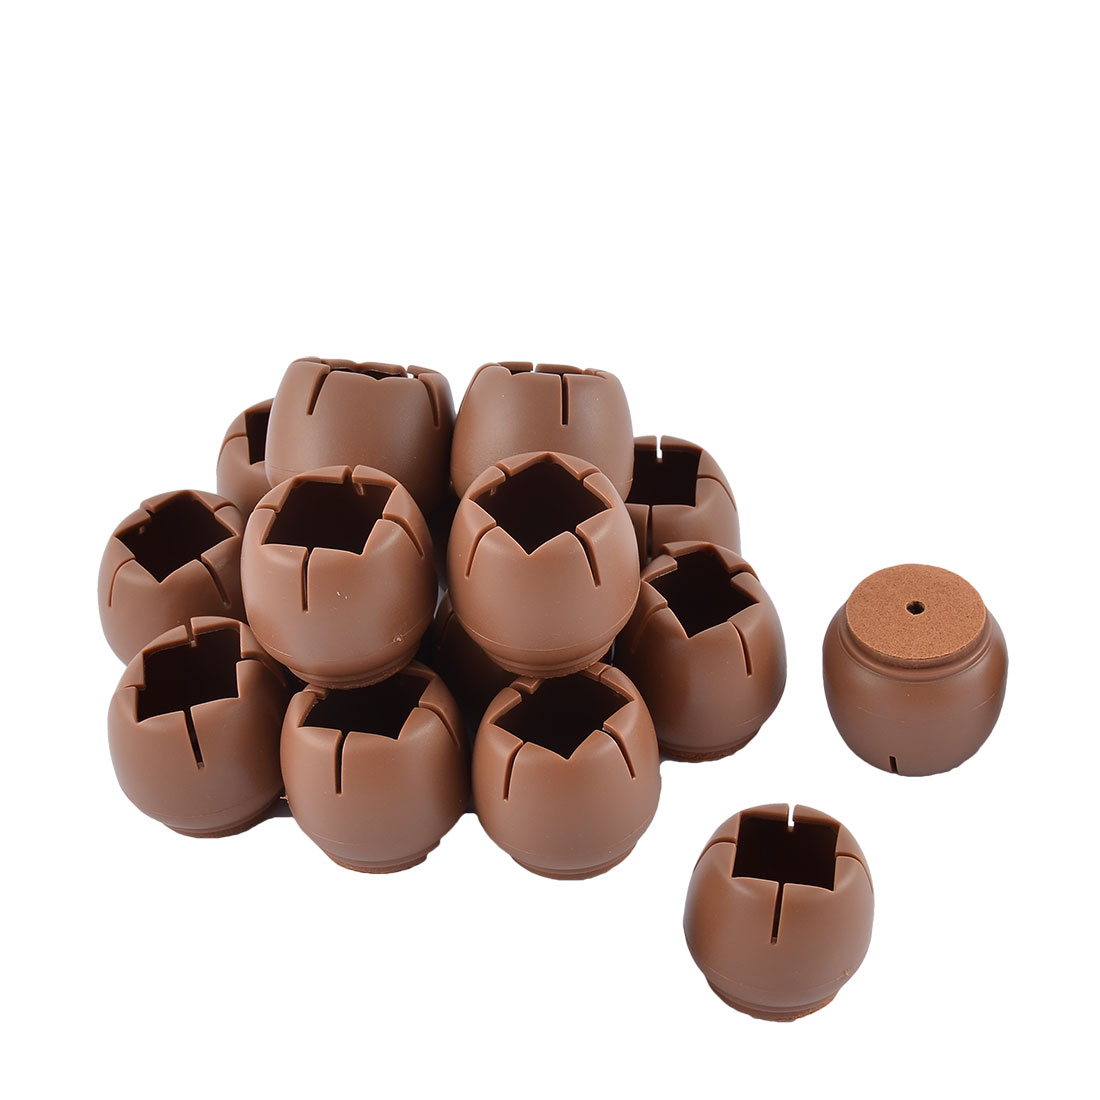 Silicone Floor Protecting Furniture Leg Cap Cover Protector Coffee Color 3.8 x 3.5cm 16pcs